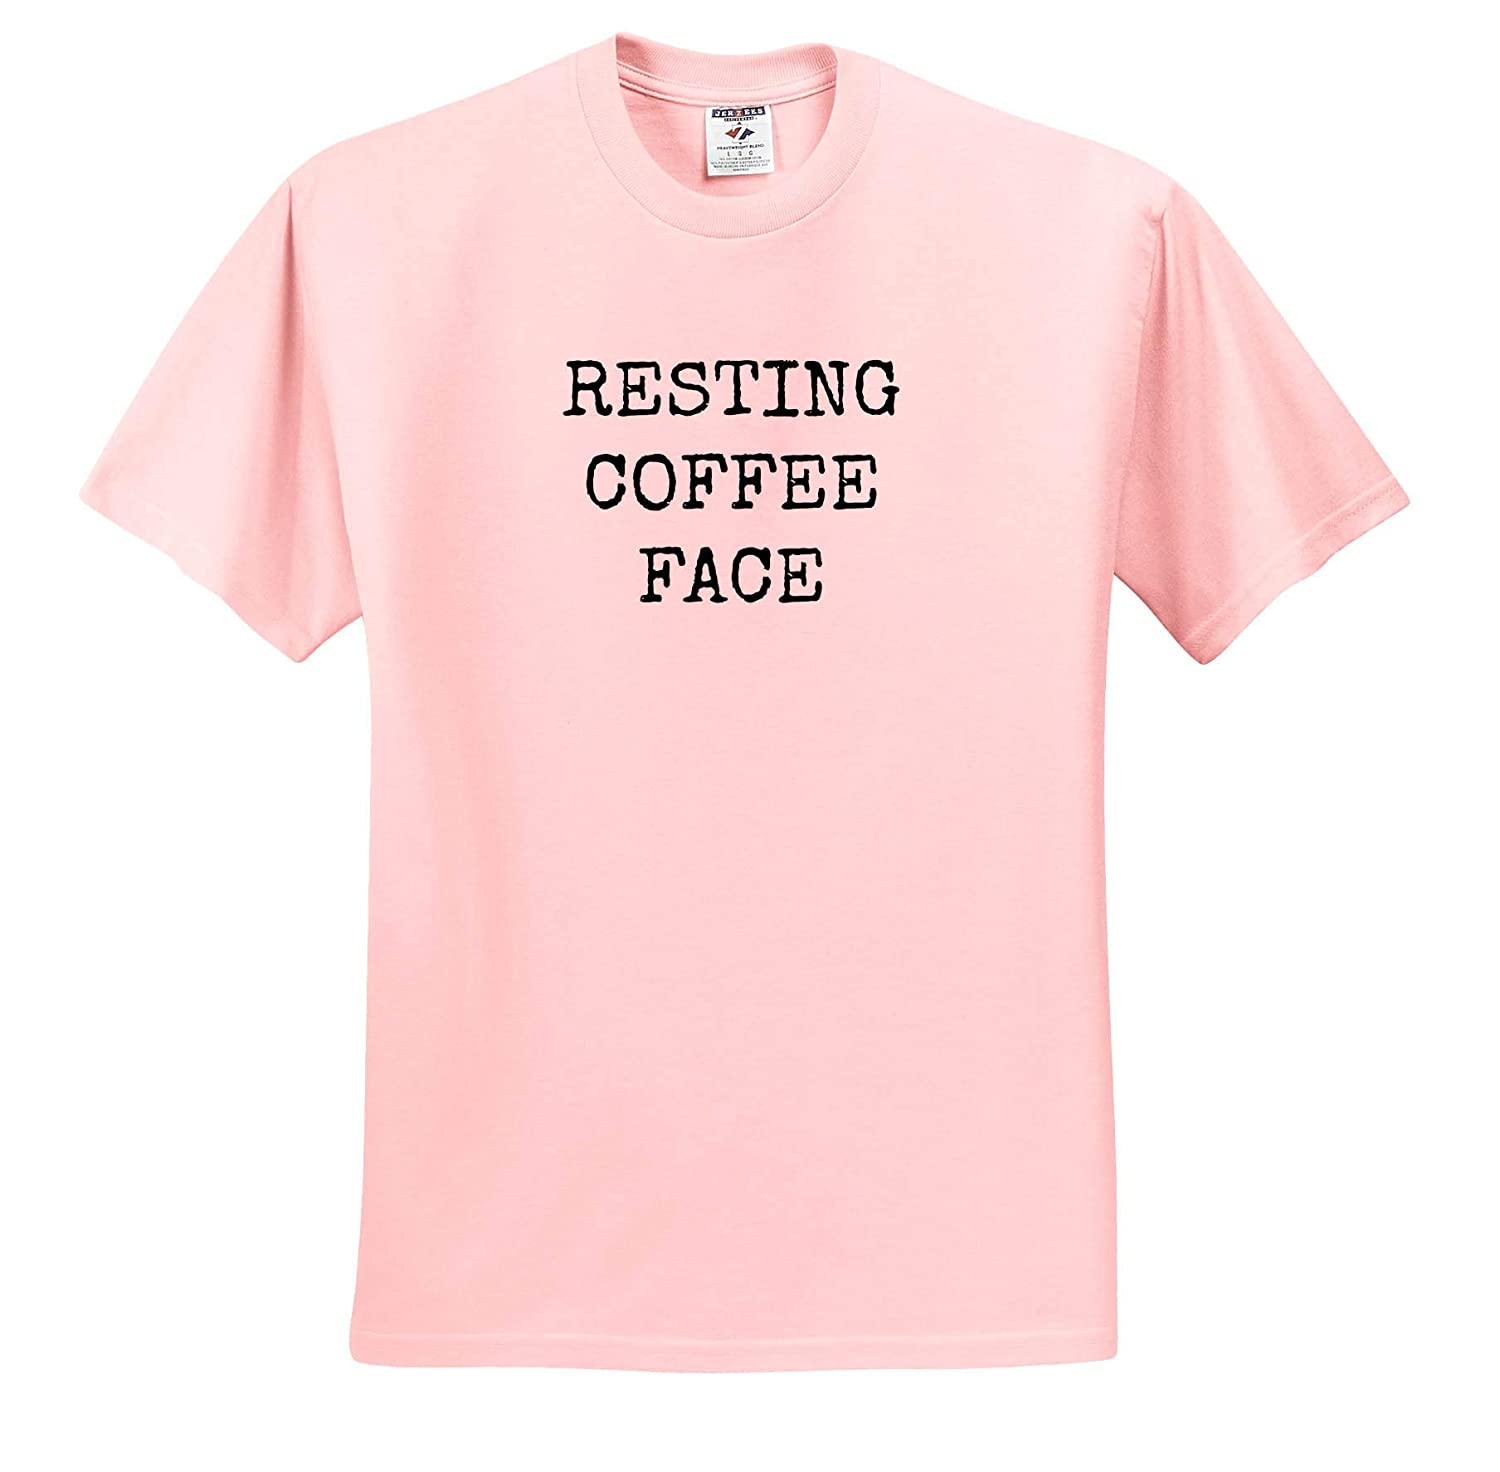 Adult T-Shirt XL 3dRose Gabriella-Quote Image of Resting Coffee Face Quote ts/_316956